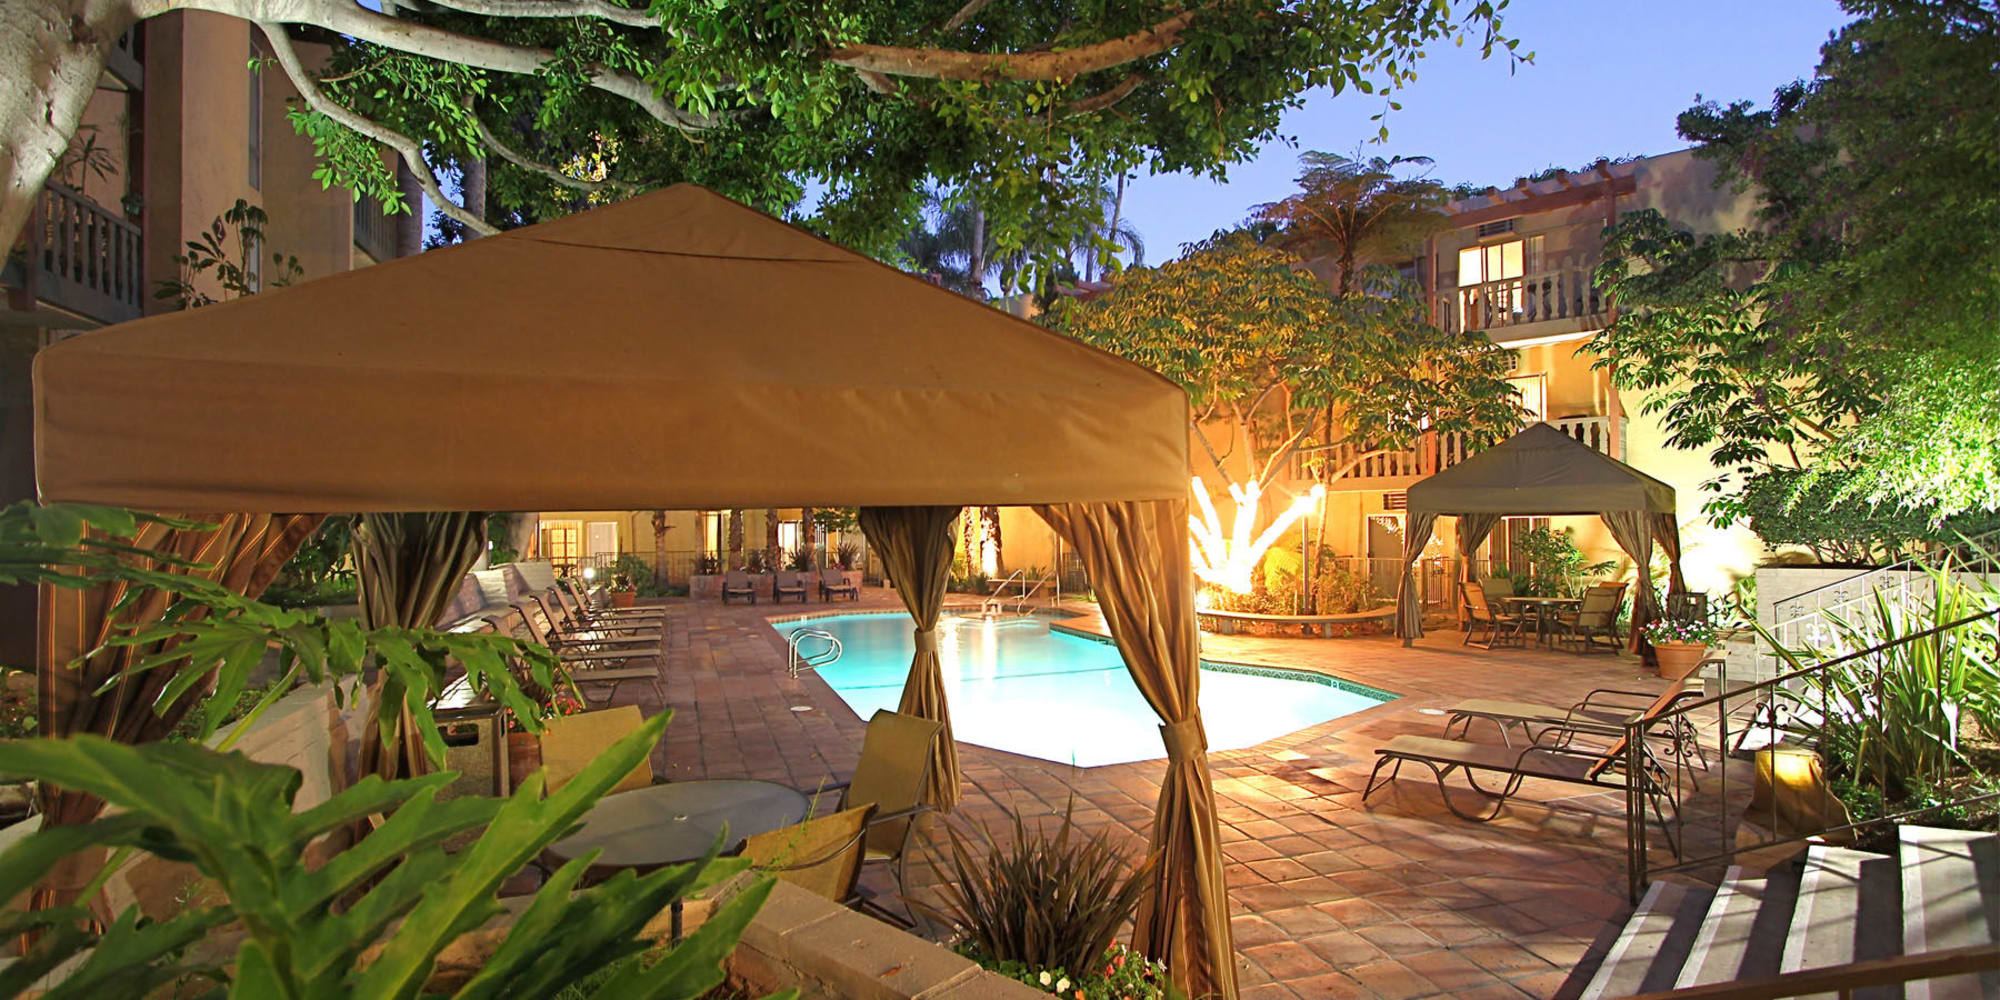 Dusk view of the swimming pool area with covered cabanas at Mediterranean Village in West Hollywood, California